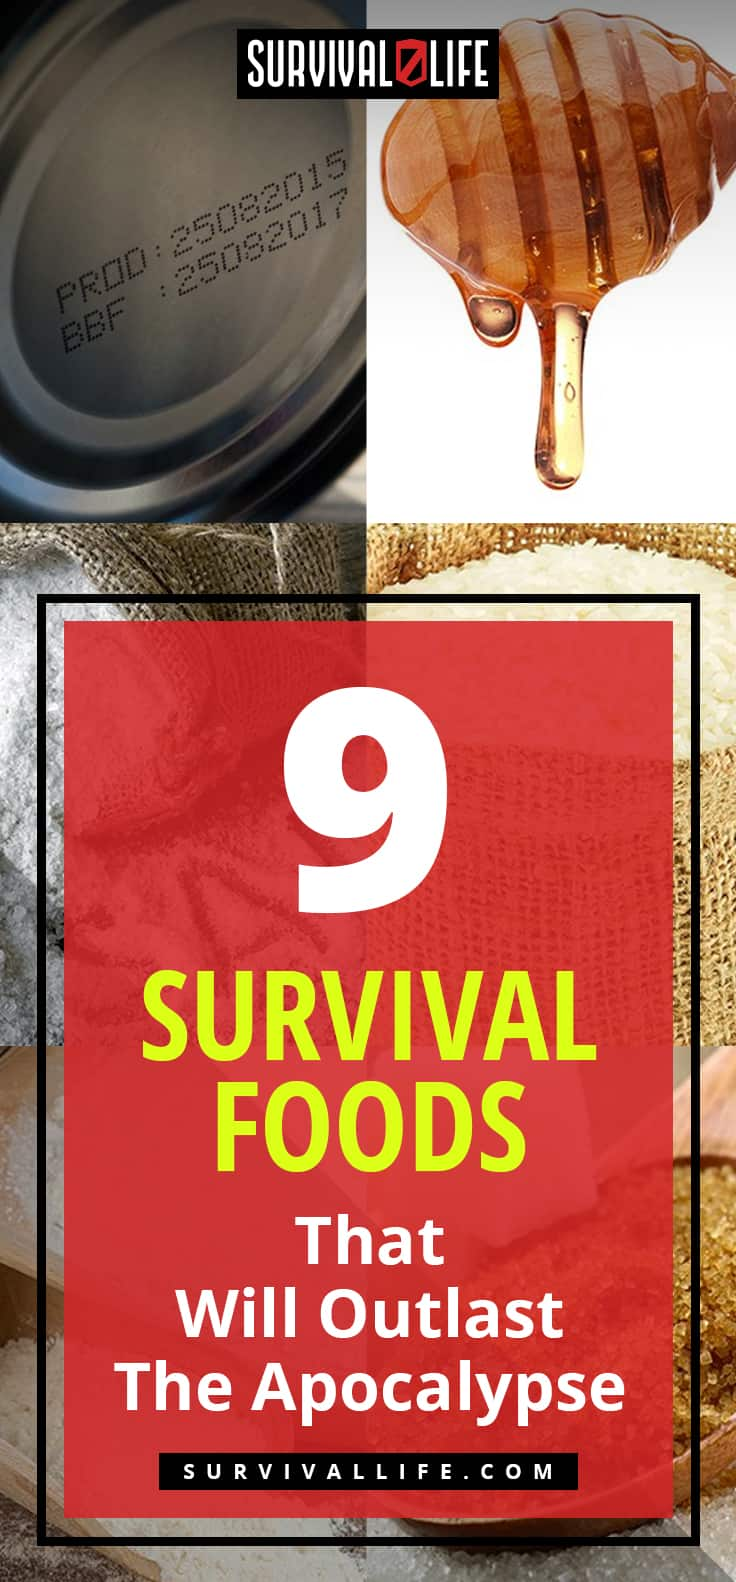 Survival Food Items That Will Outlast The Apocalypse | https://survivallife.com/survival-food-outlast-apocalypse/